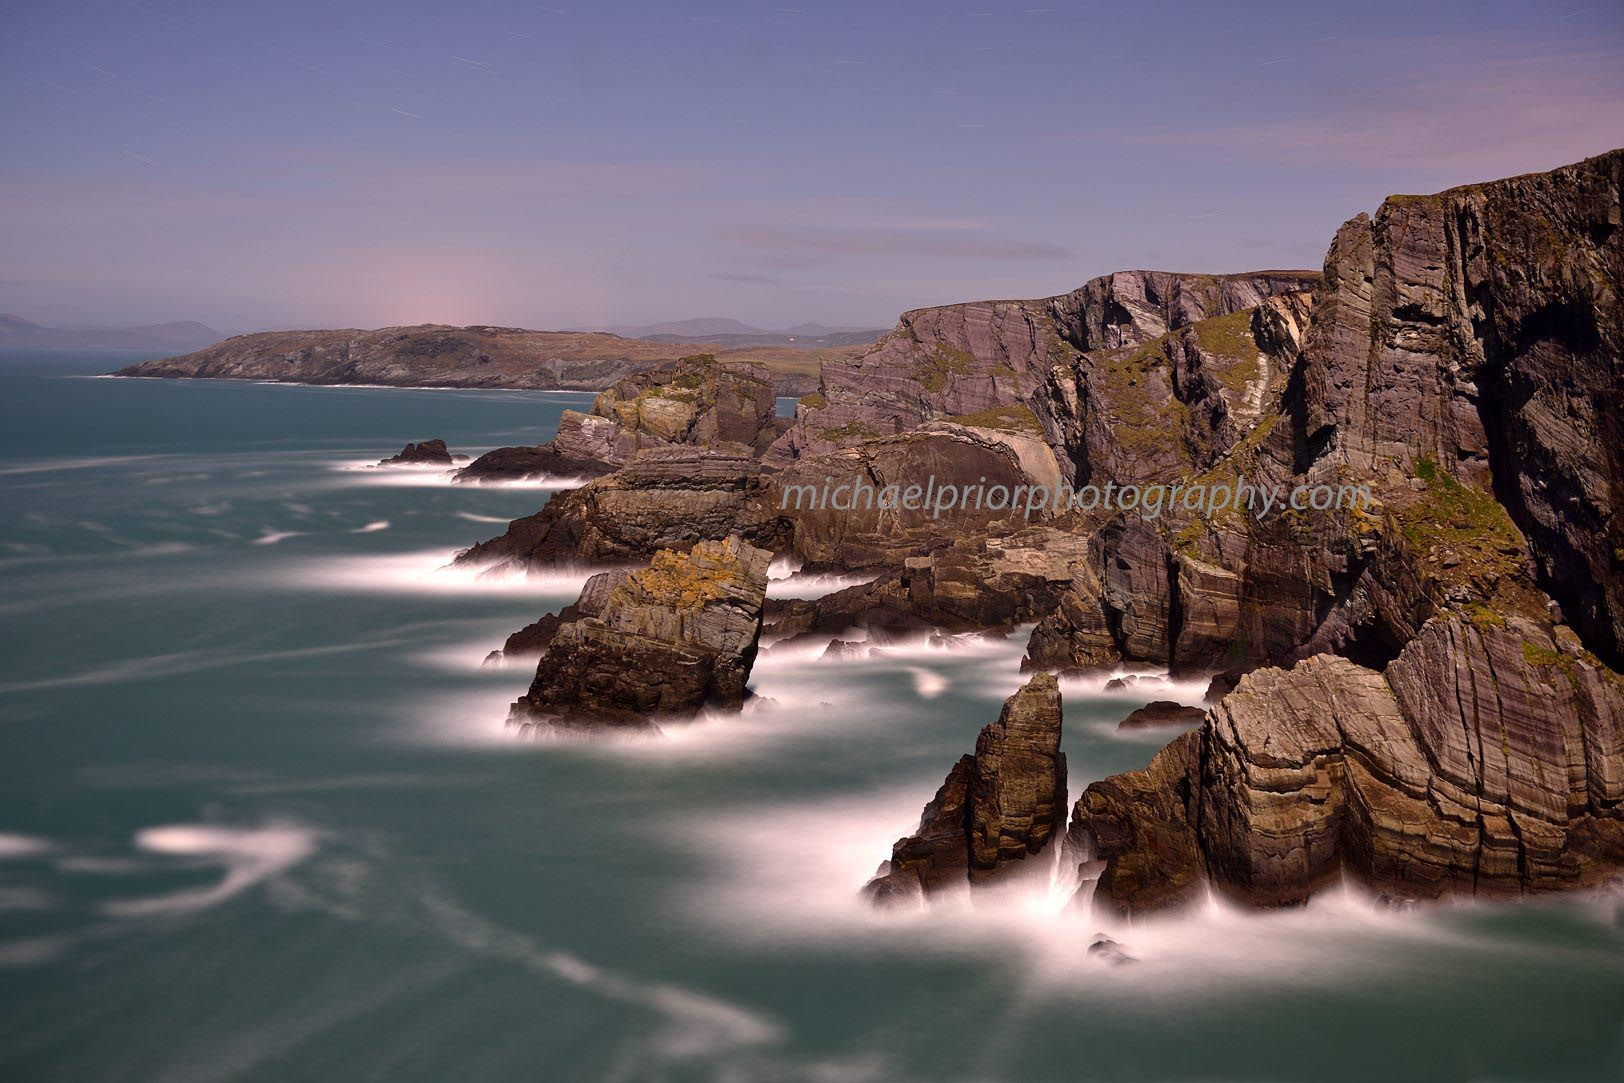 Mizen Head Cliffs